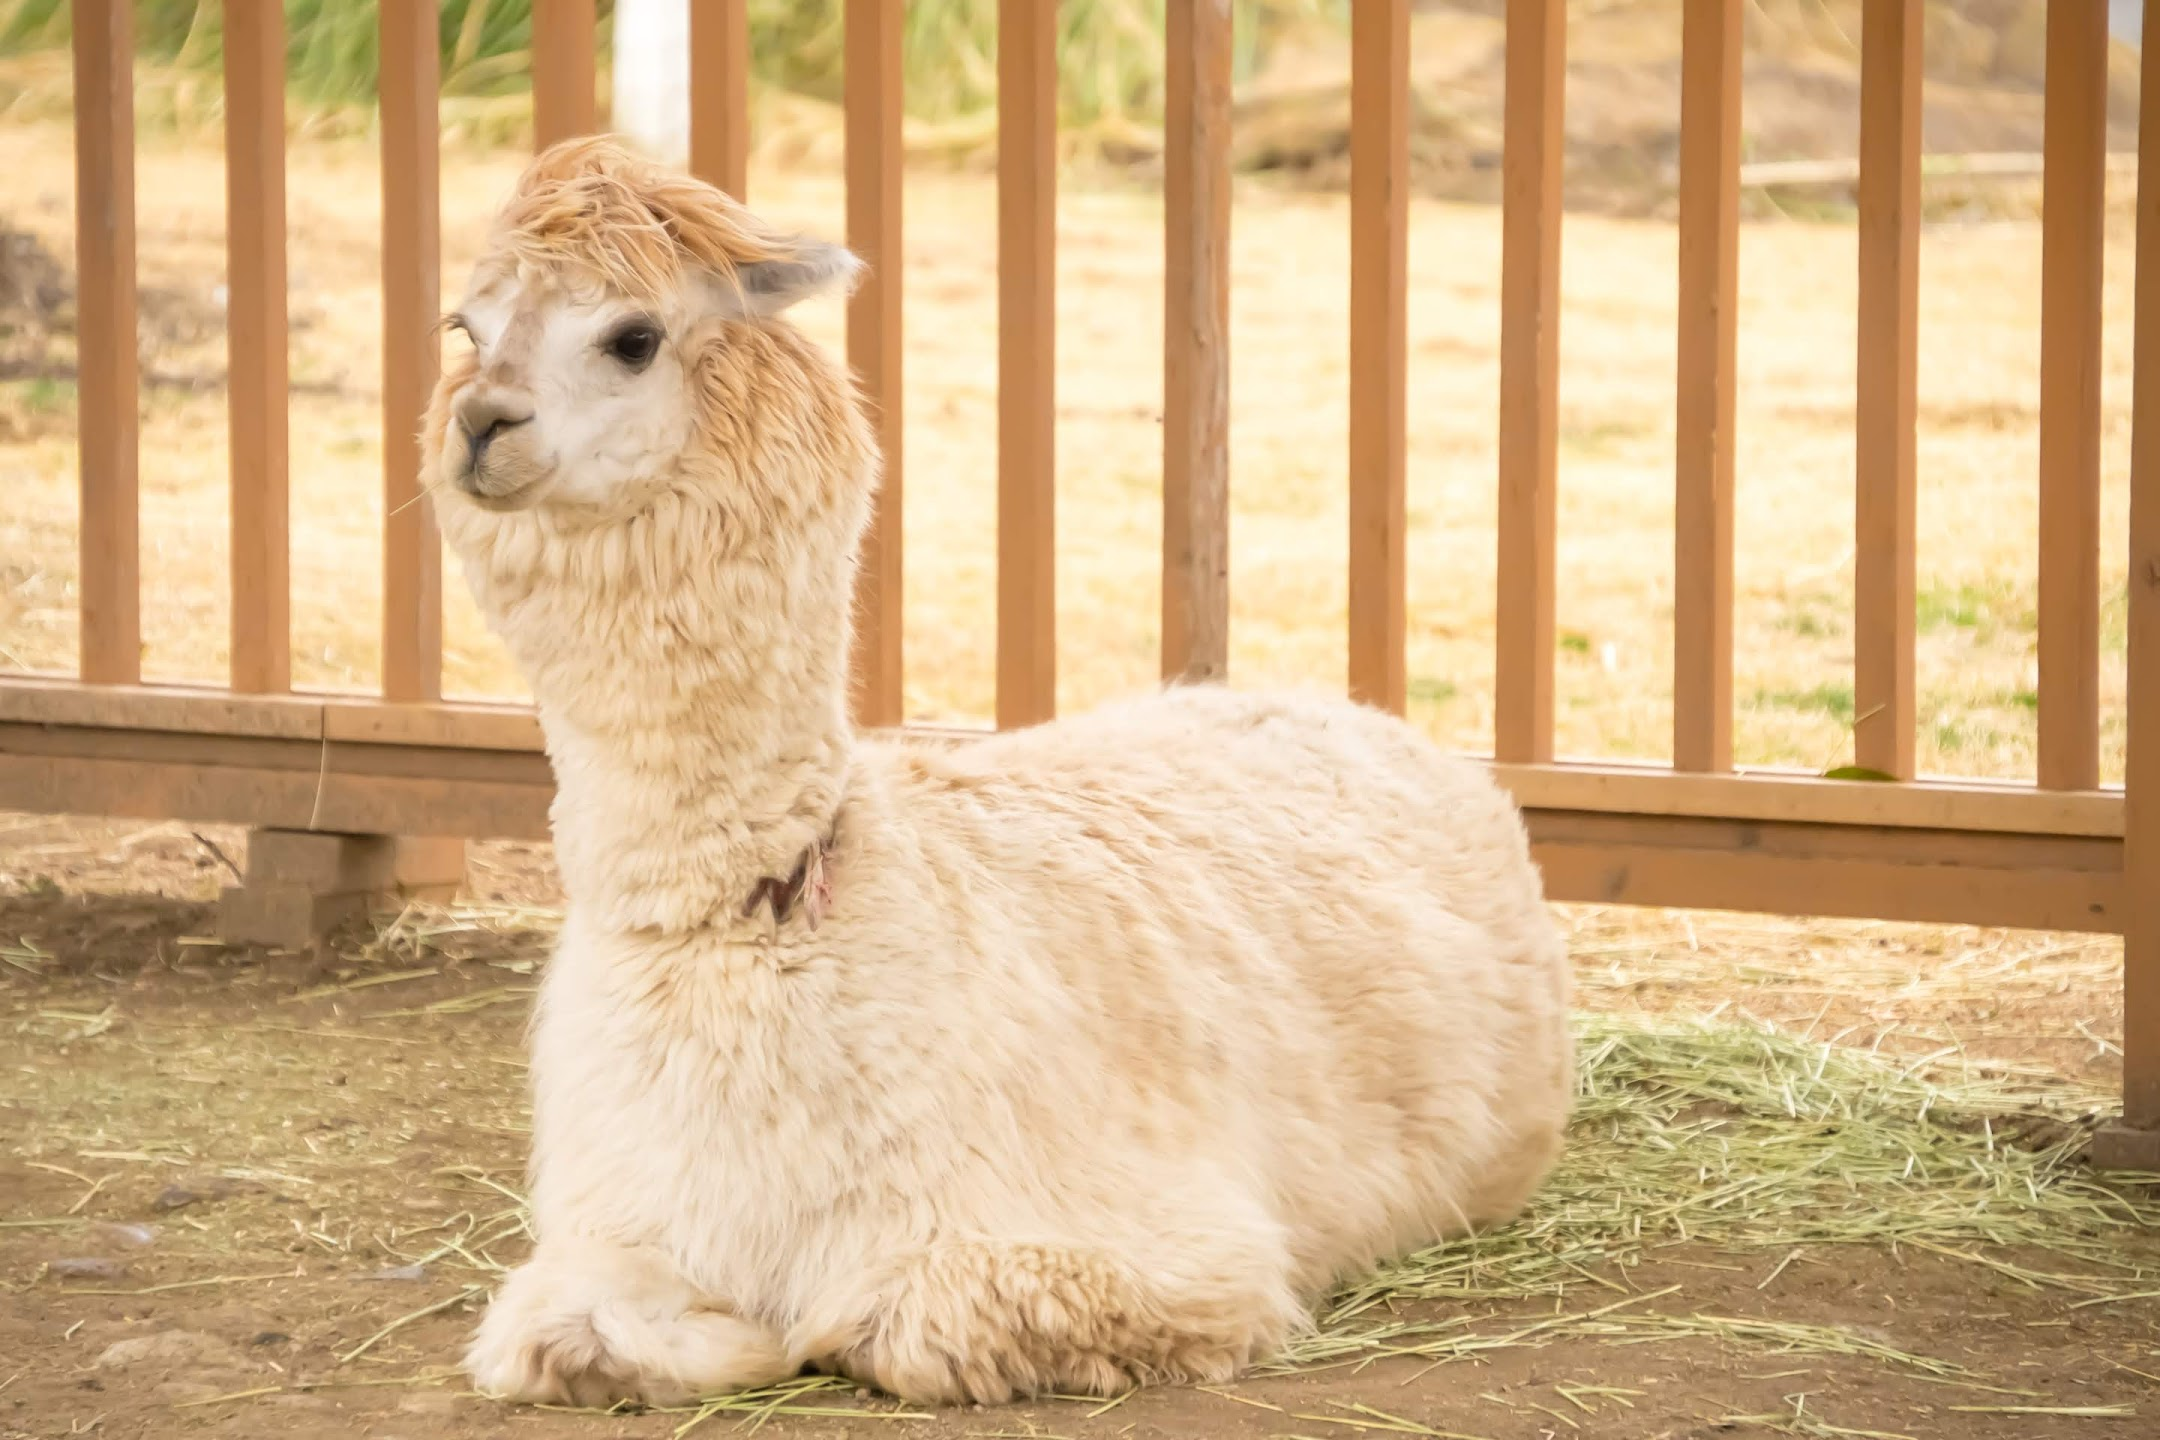 Kobe Animal Kingdom alpaca2